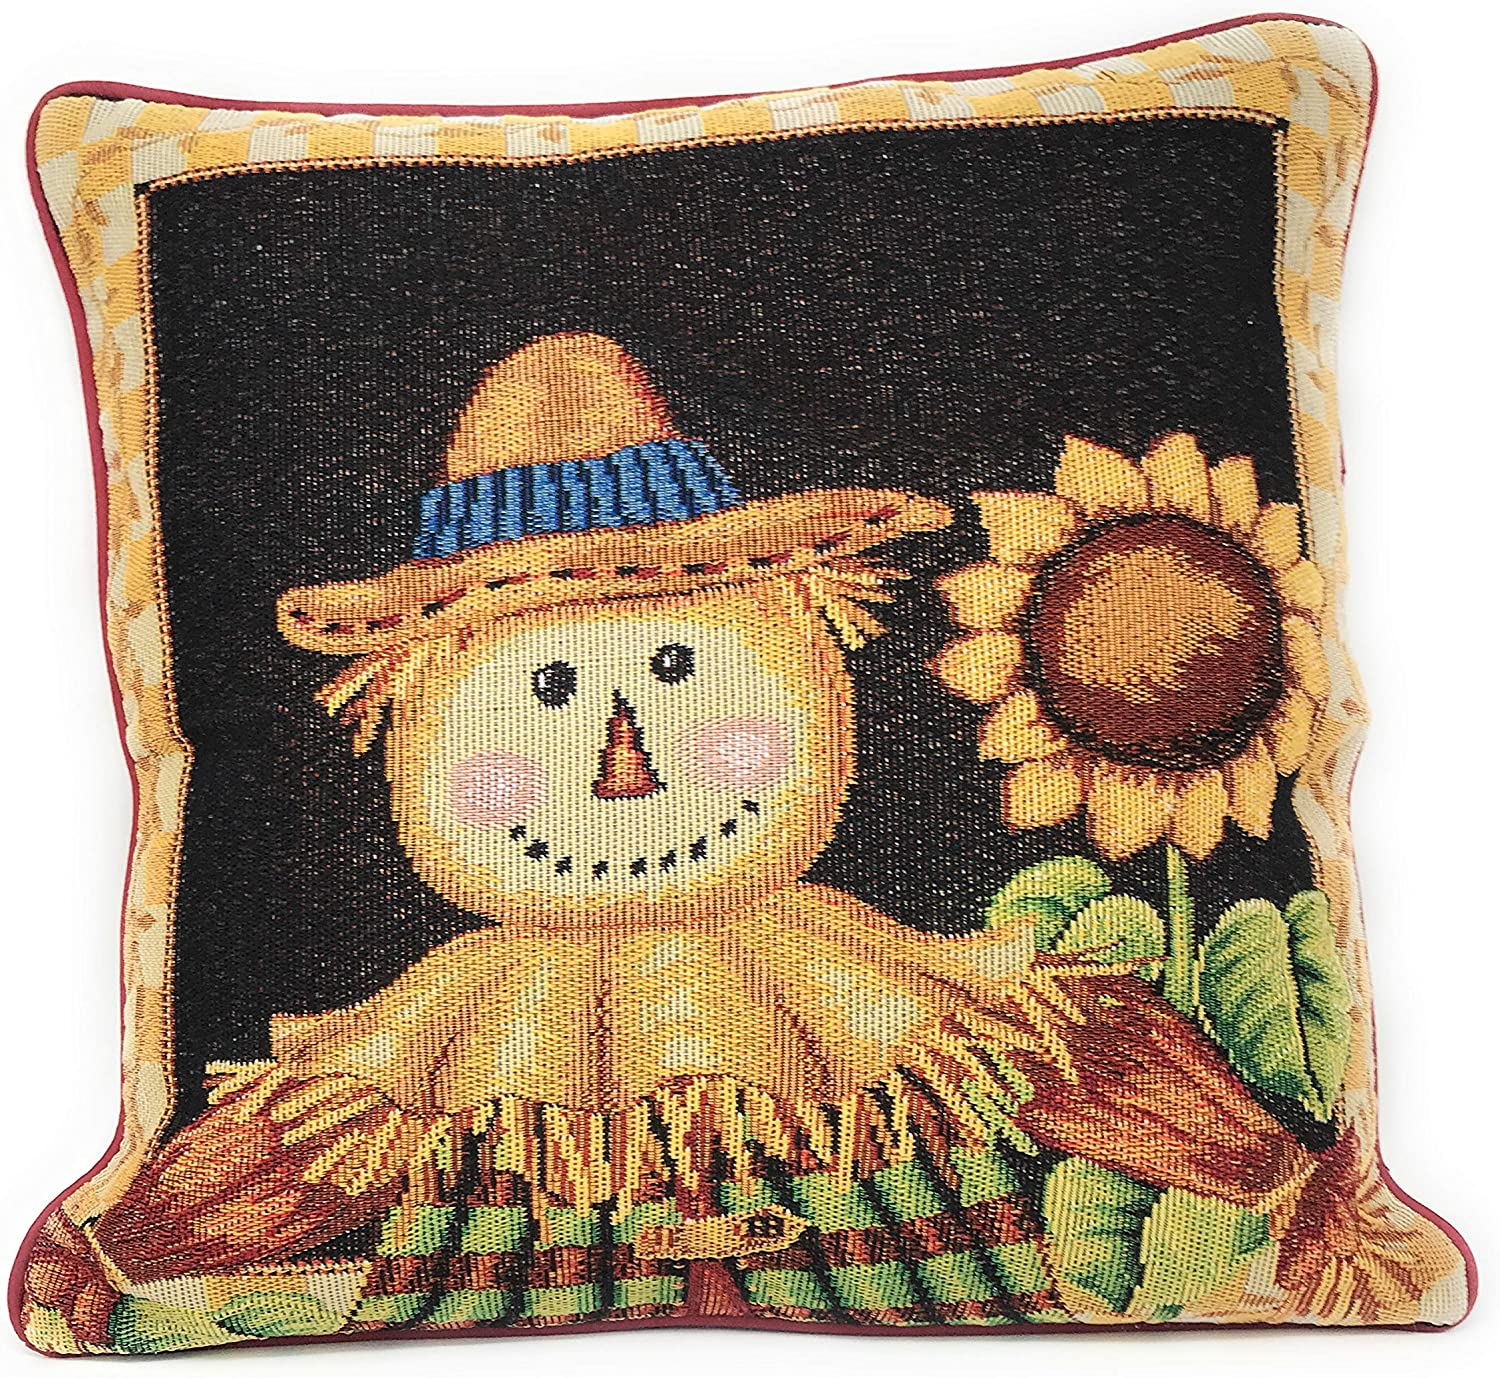 Tache Sunflower Field Scarecrow Thanksgiving Autumn Harvest Country Farmhouse Vintage Decorative Woven Tapestry Cushion Throw Pillow Cover, 16 x 16, 1 Piece